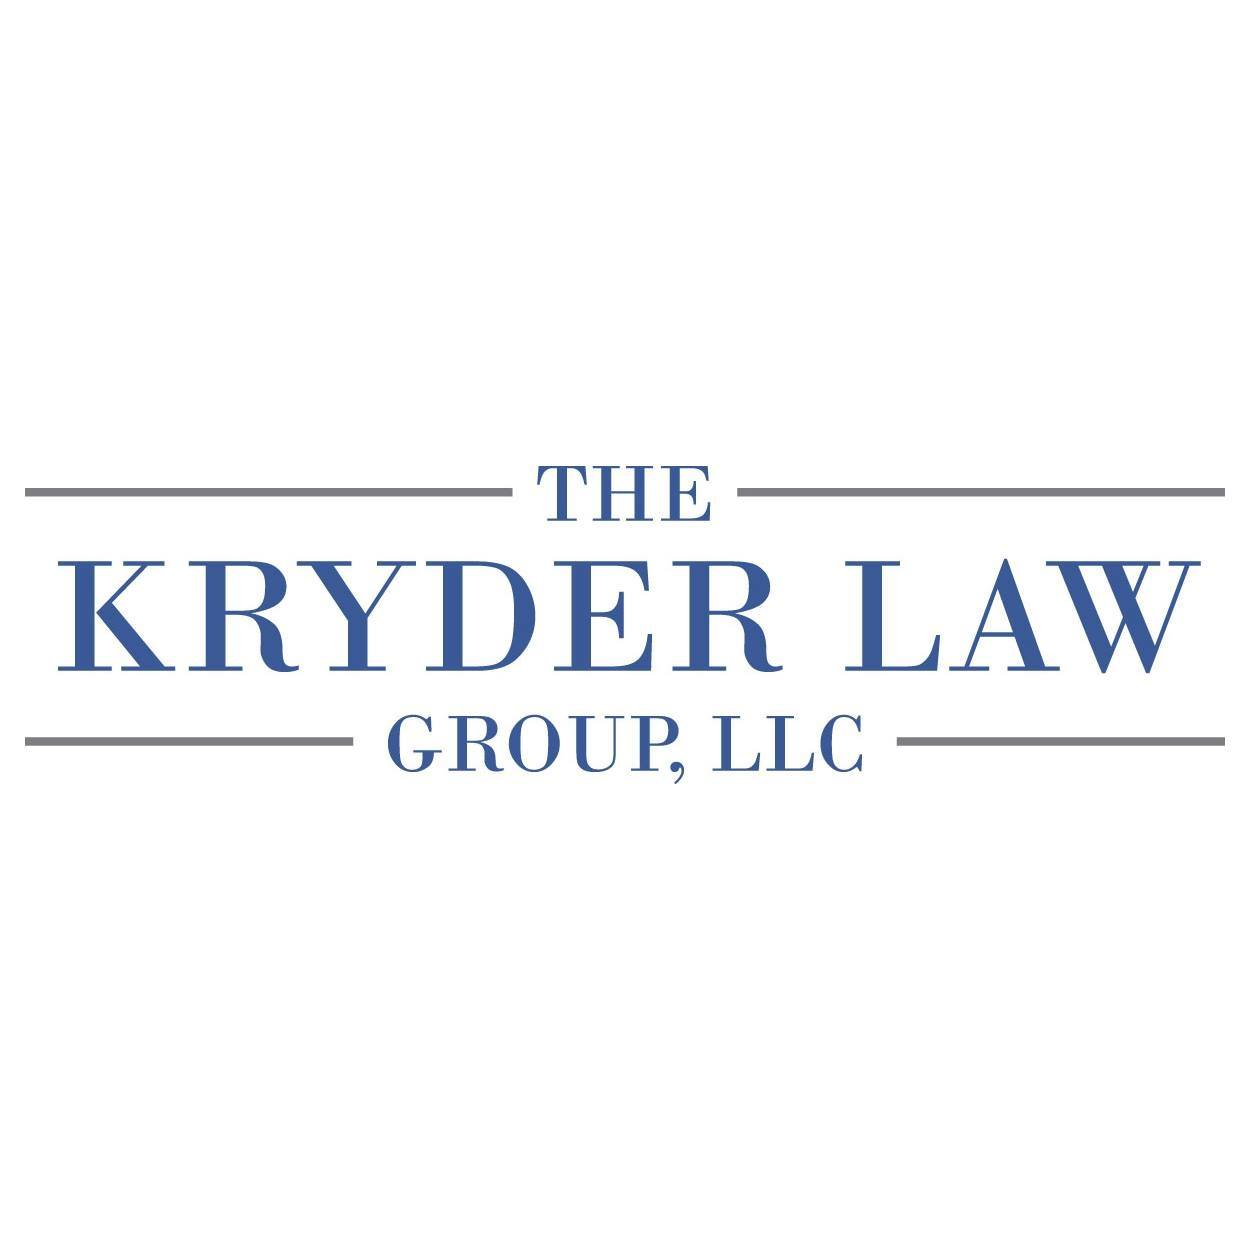 The Kryder Law Group LLC